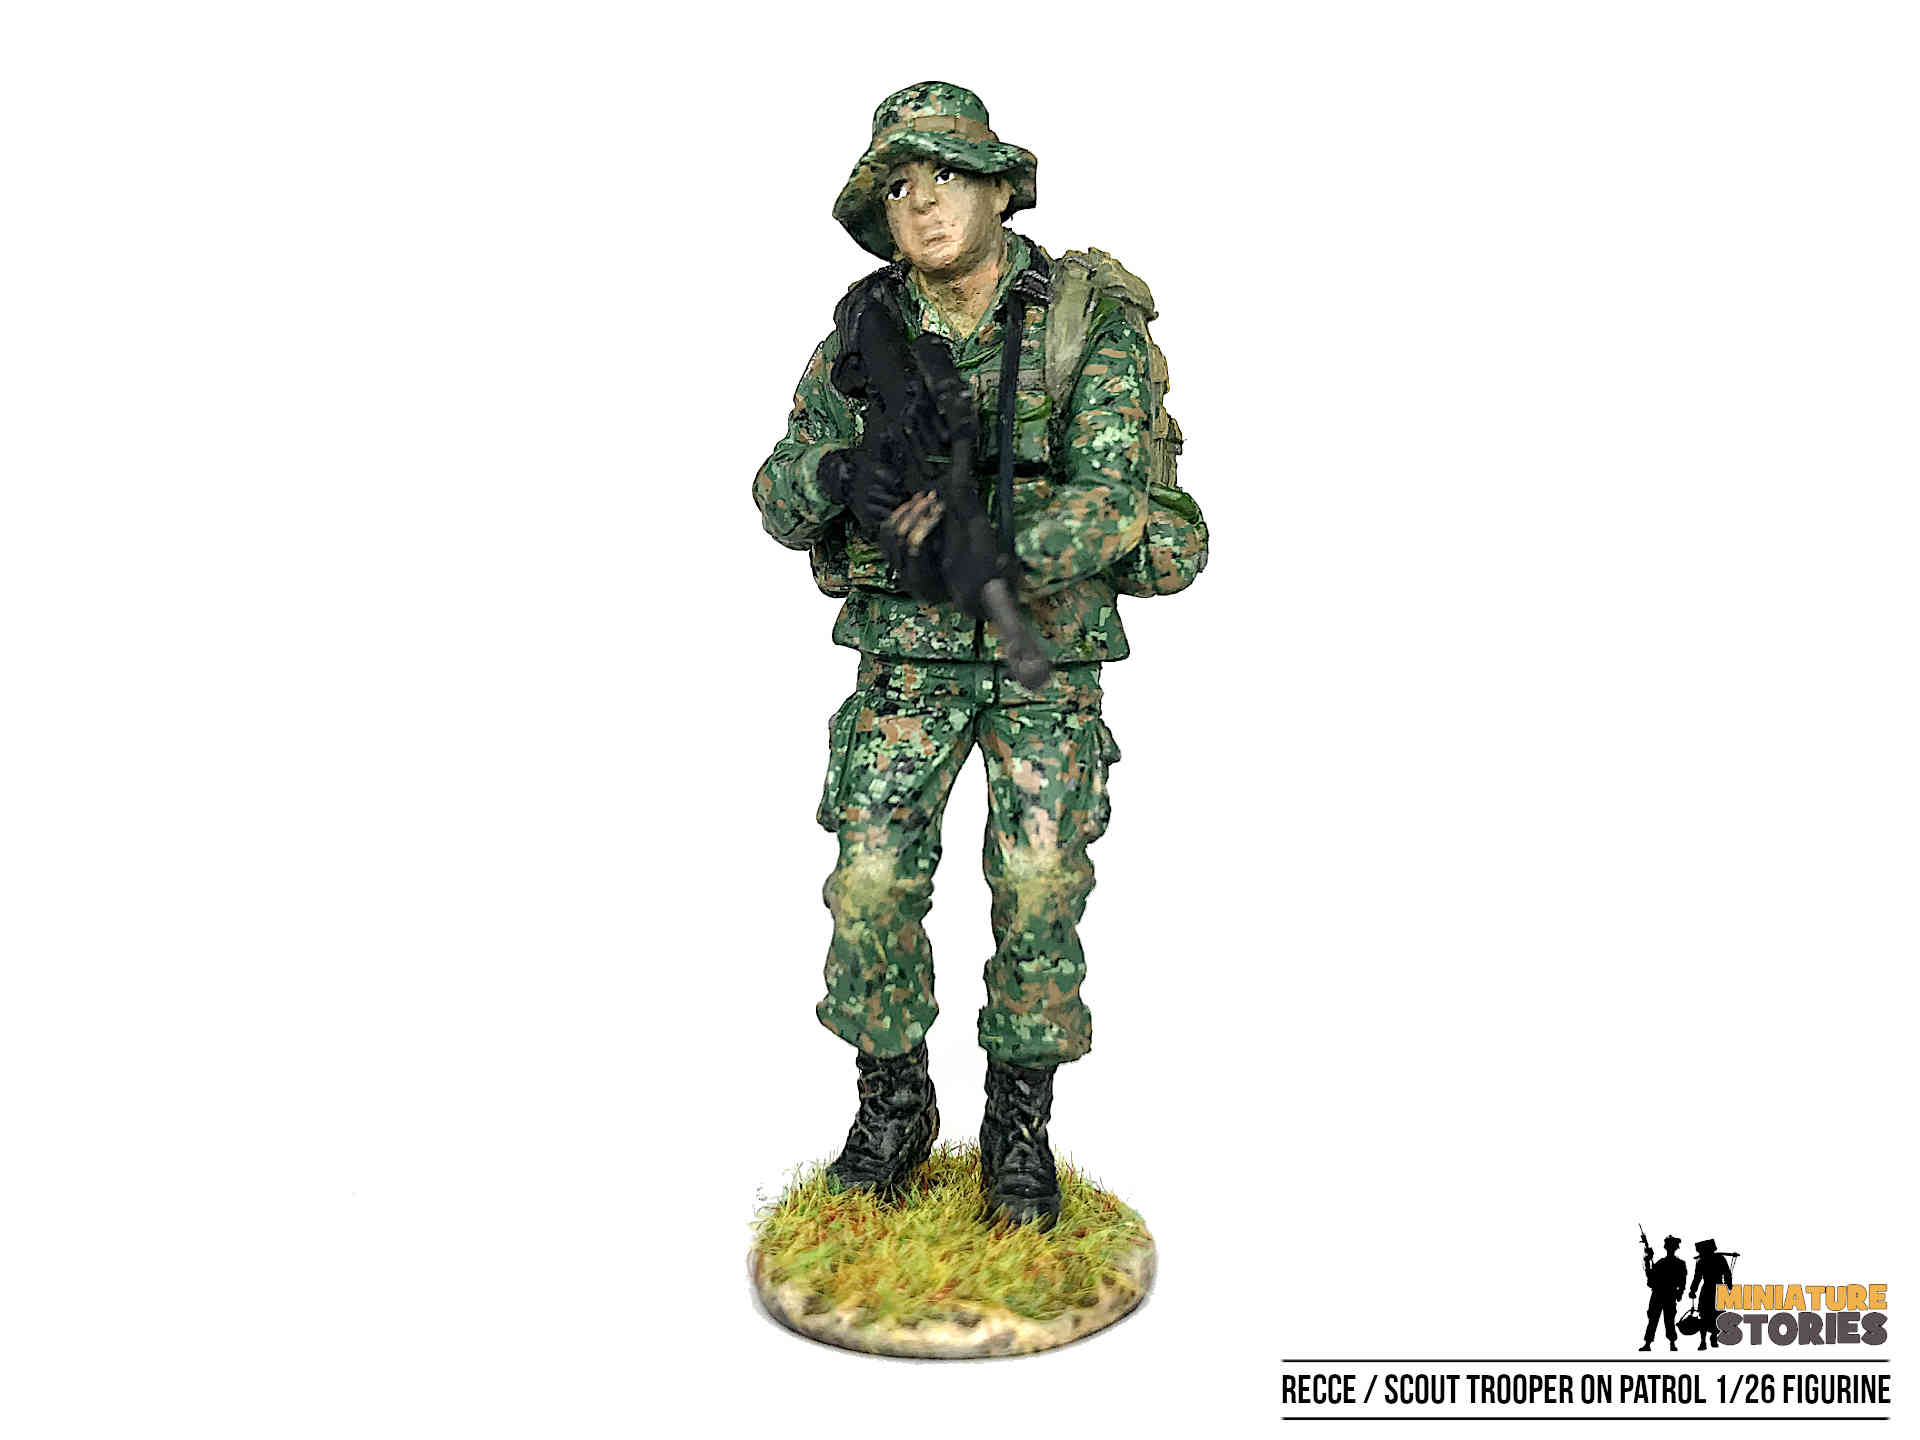 Singapore Army Recce Scout Trooper Figurine (front)